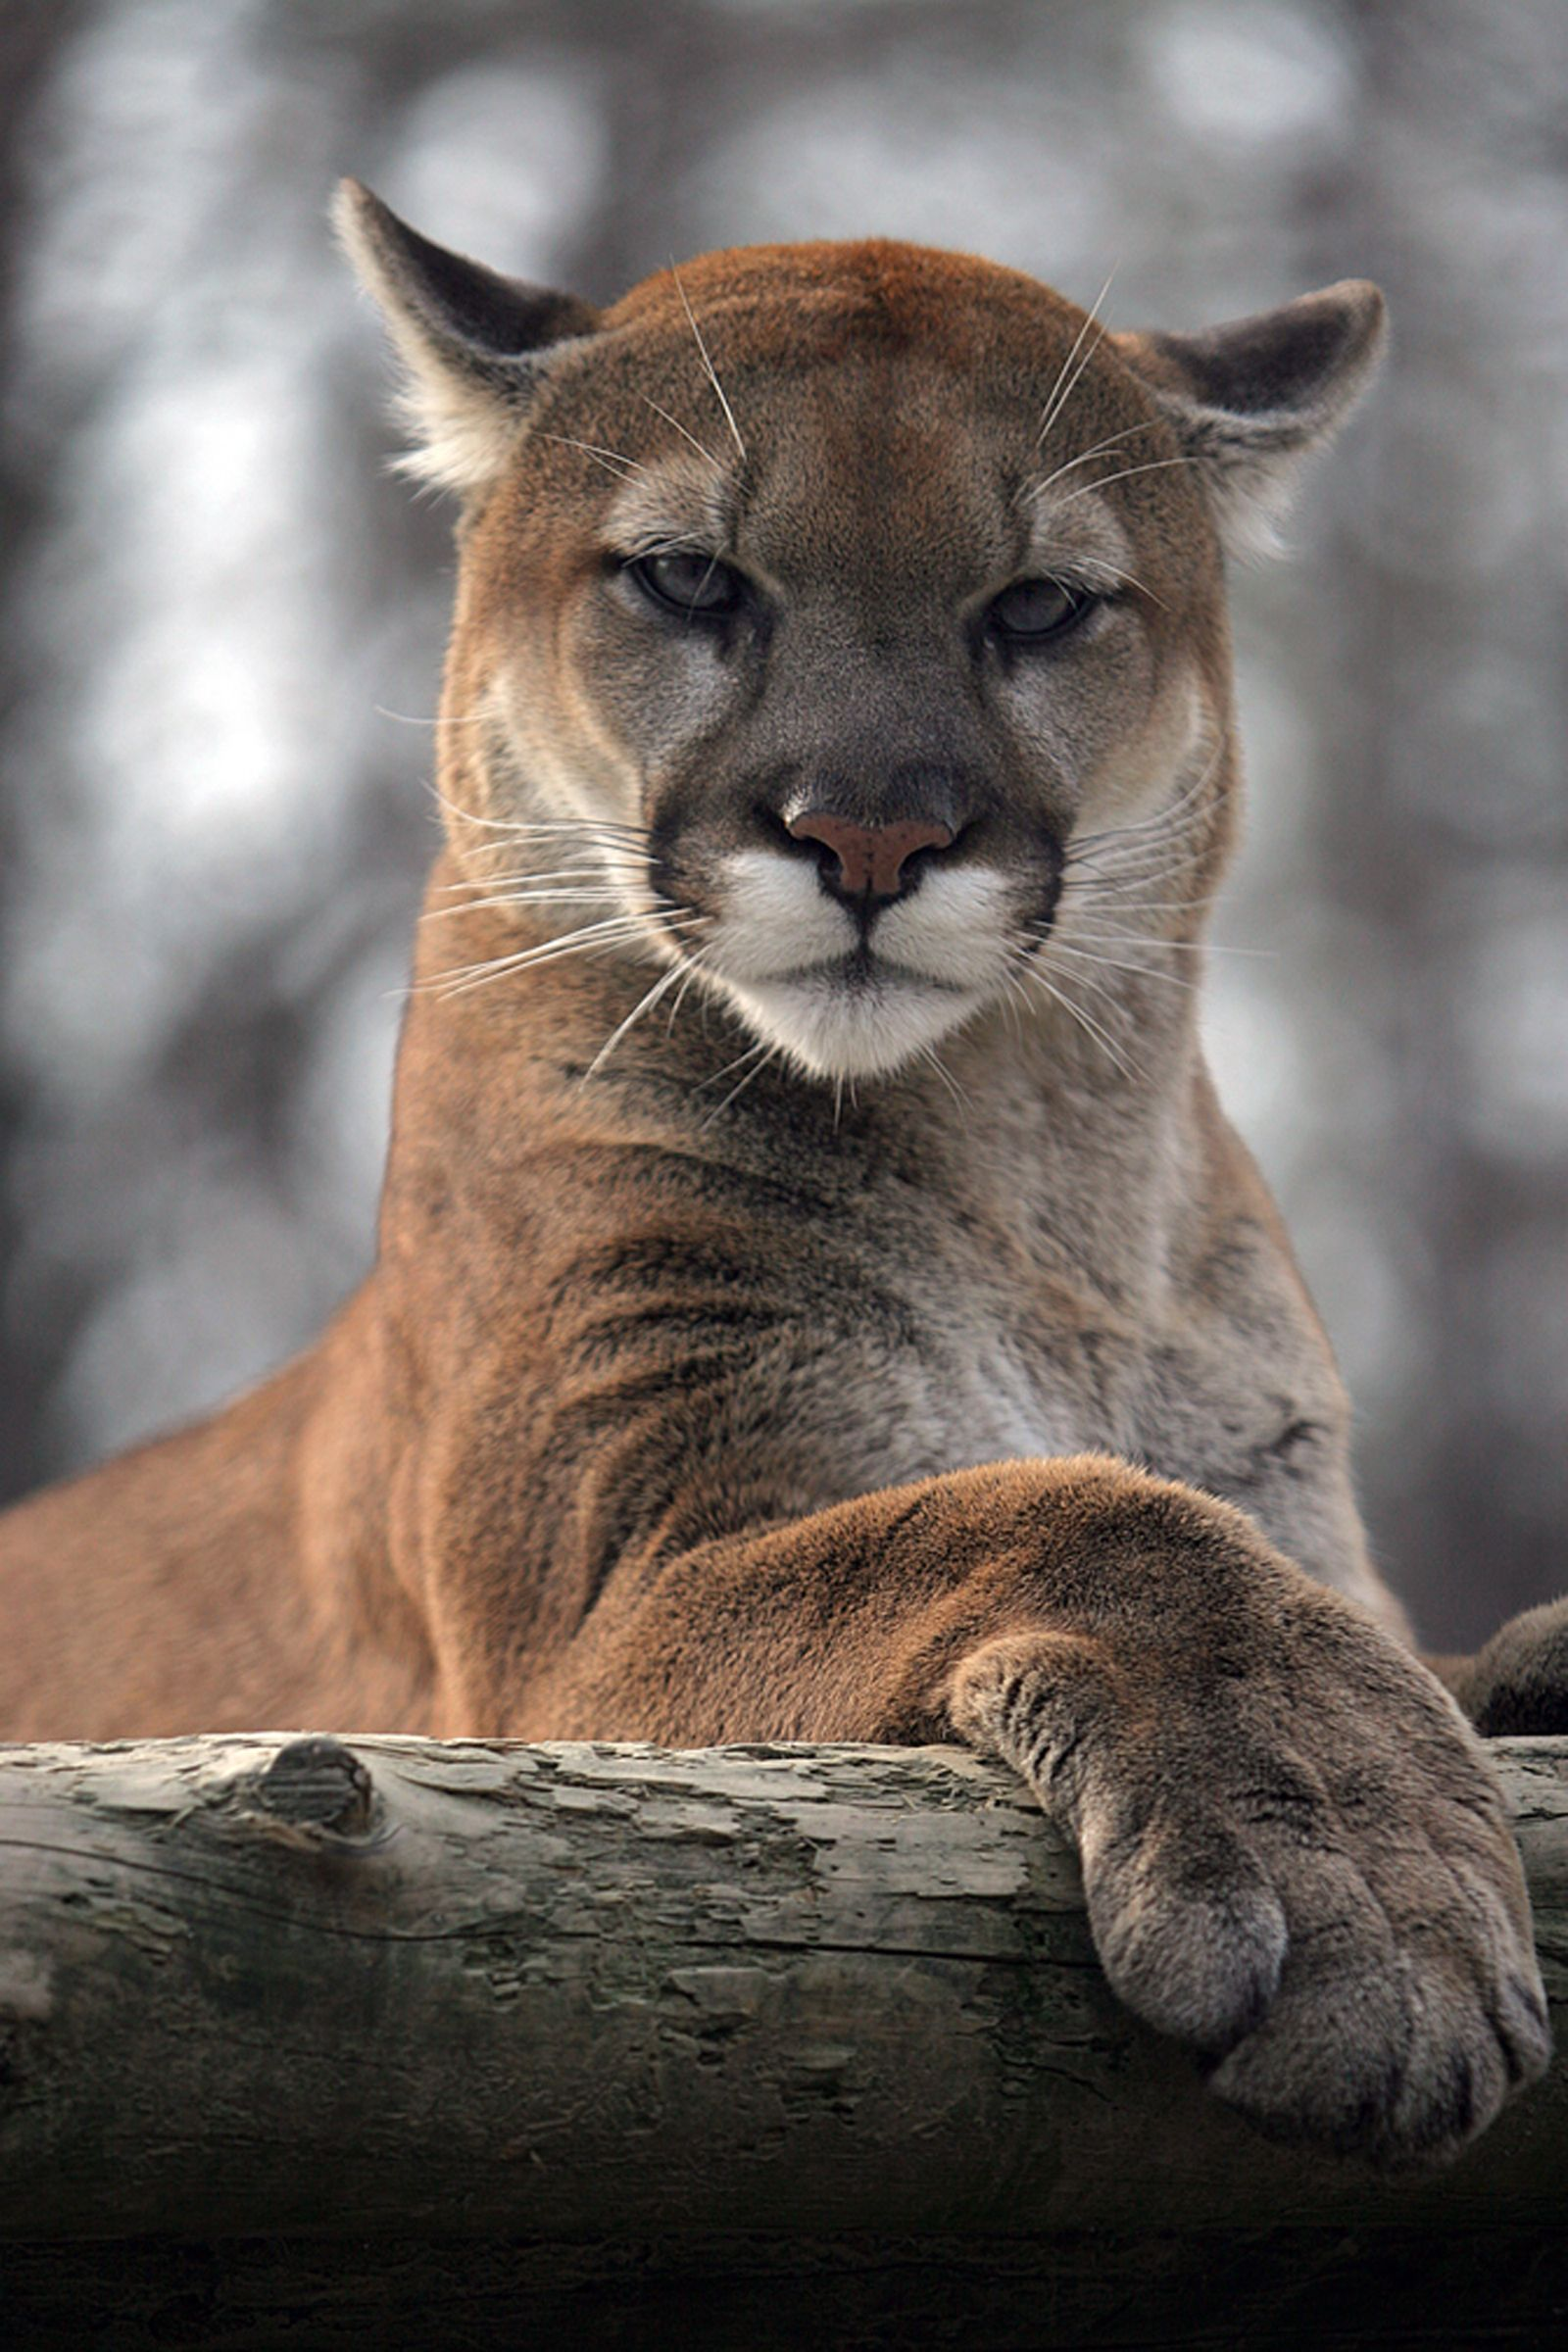 cougar also known as a puma or mountain lion big cats pinterest animales grandes. Black Bedroom Furniture Sets. Home Design Ideas